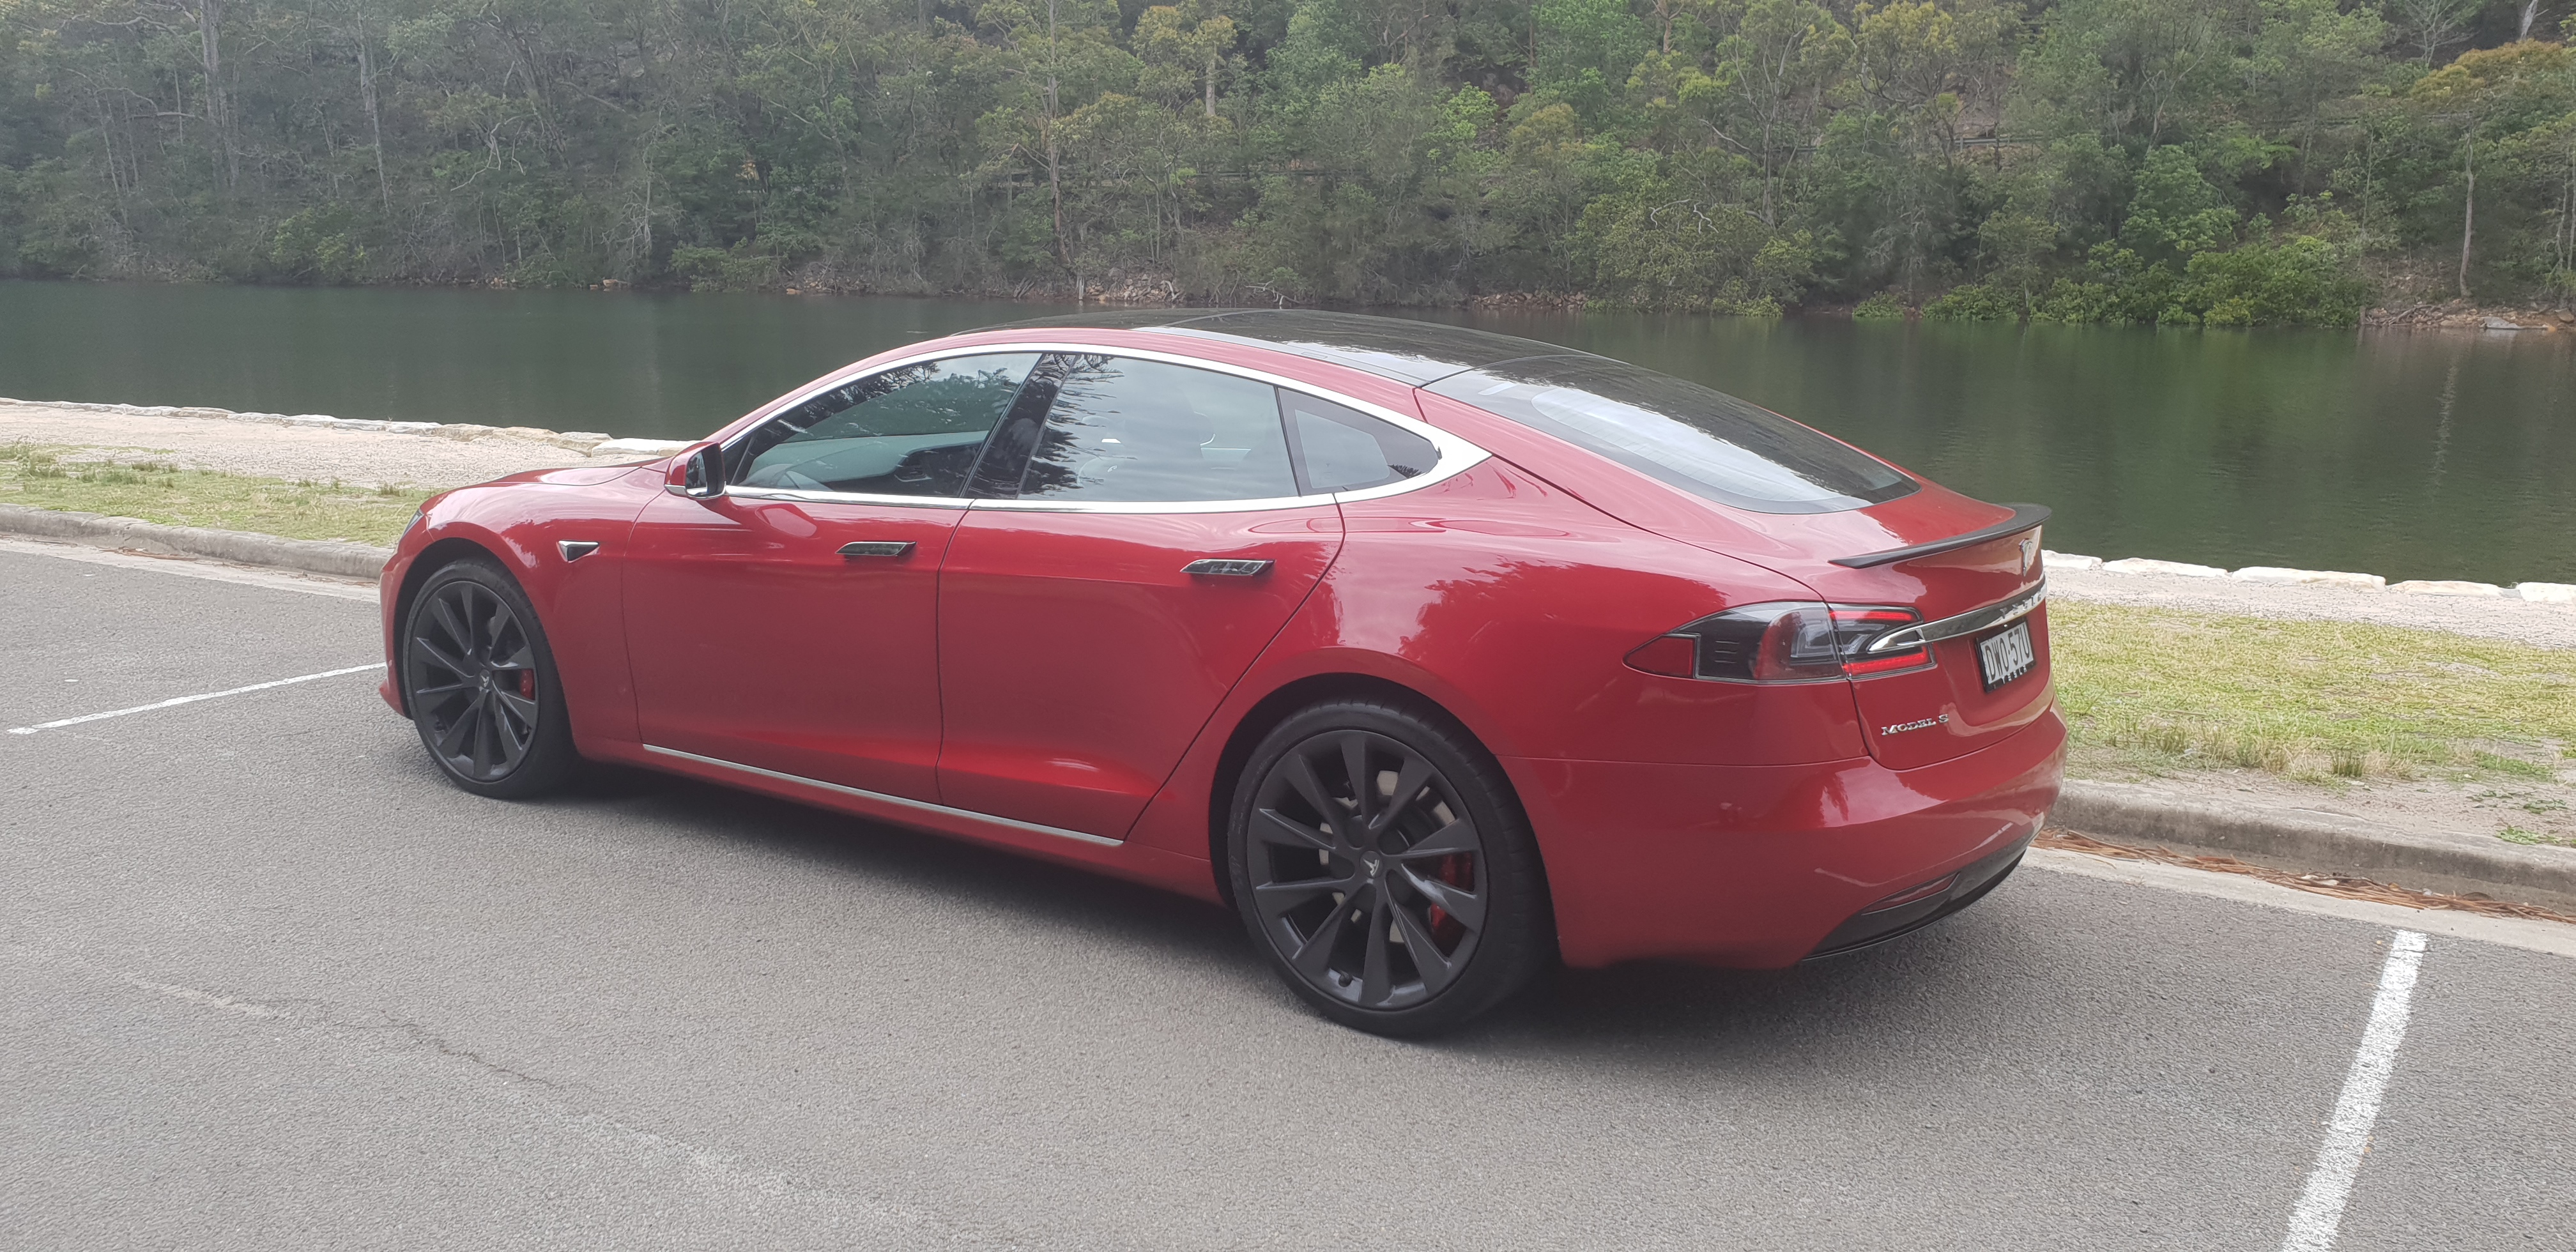 2019 Tesla Model S P100d Review Top10cars